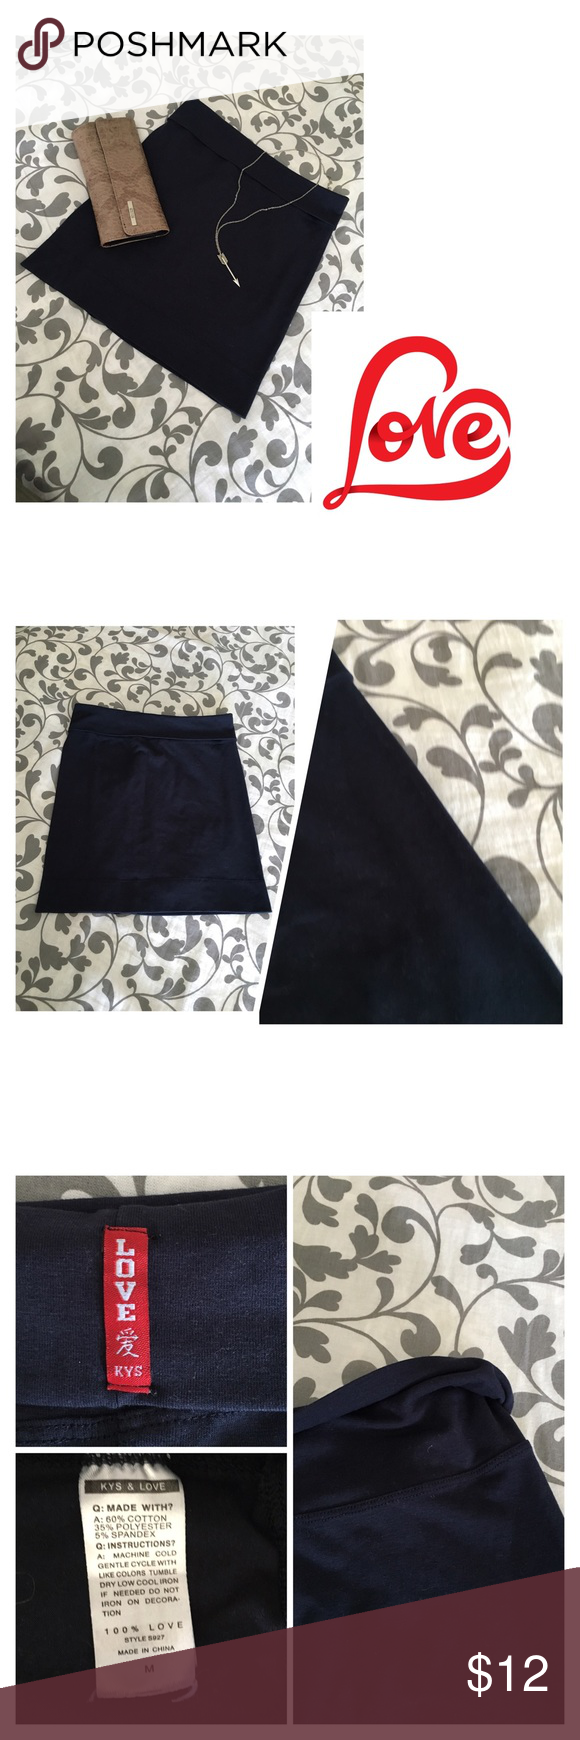 KYS Love navy blue fold waist mini skirt- NWOT Brand new, never worn; no tags. Please see all pictures.   PLEASE, REASONABLE OFFERS ONLY!  -Smoke and pet free - If its $10 or under, I WILL NOT accept offers. -I do not model anything; everything looks different on everyone and I don't wasn't too Jade that. I will put the item on a dress form or find factory pics and provide measurements. -NO HOLDS, NO TRADES, POSH RULES ONLY! KYS Love Skirts Mini